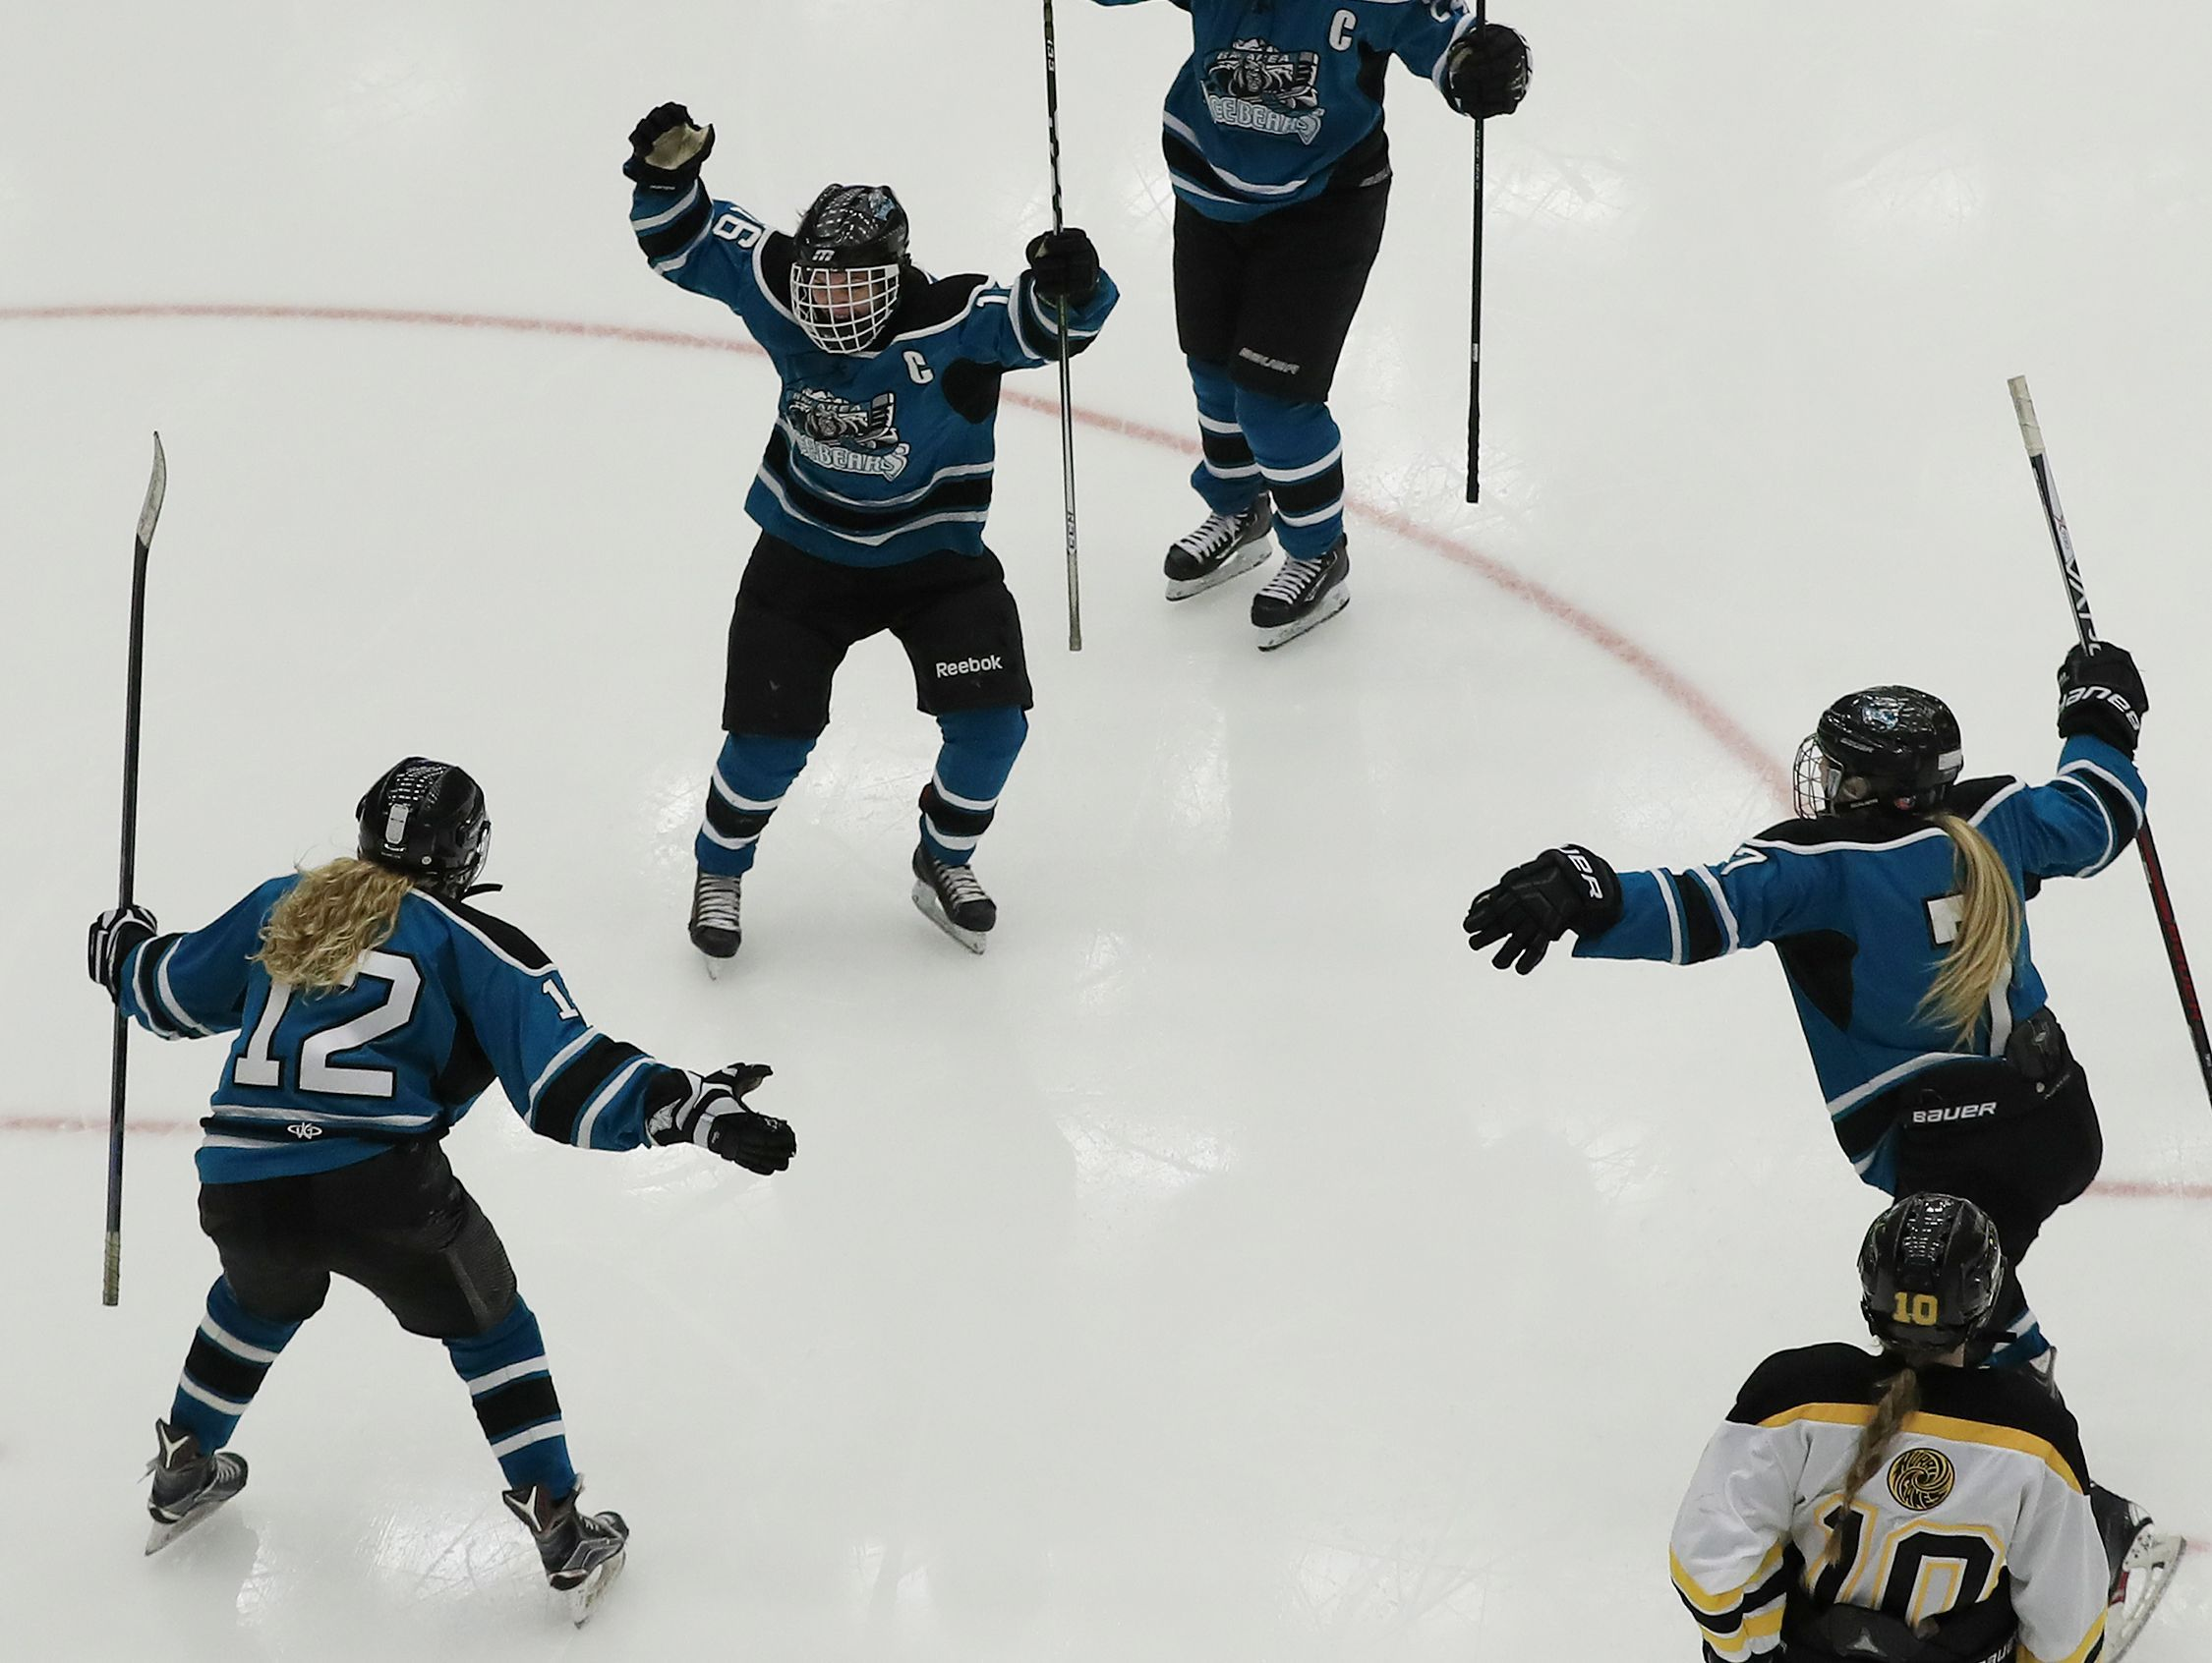 Bay Area Ice Bears forward Abby Anderson (12) celebrates with her teammates after scoring against the Hayward Hurricanes in a WIAA state semifinal girls hockey game Friday at the Alliant Energy Center in Madison.